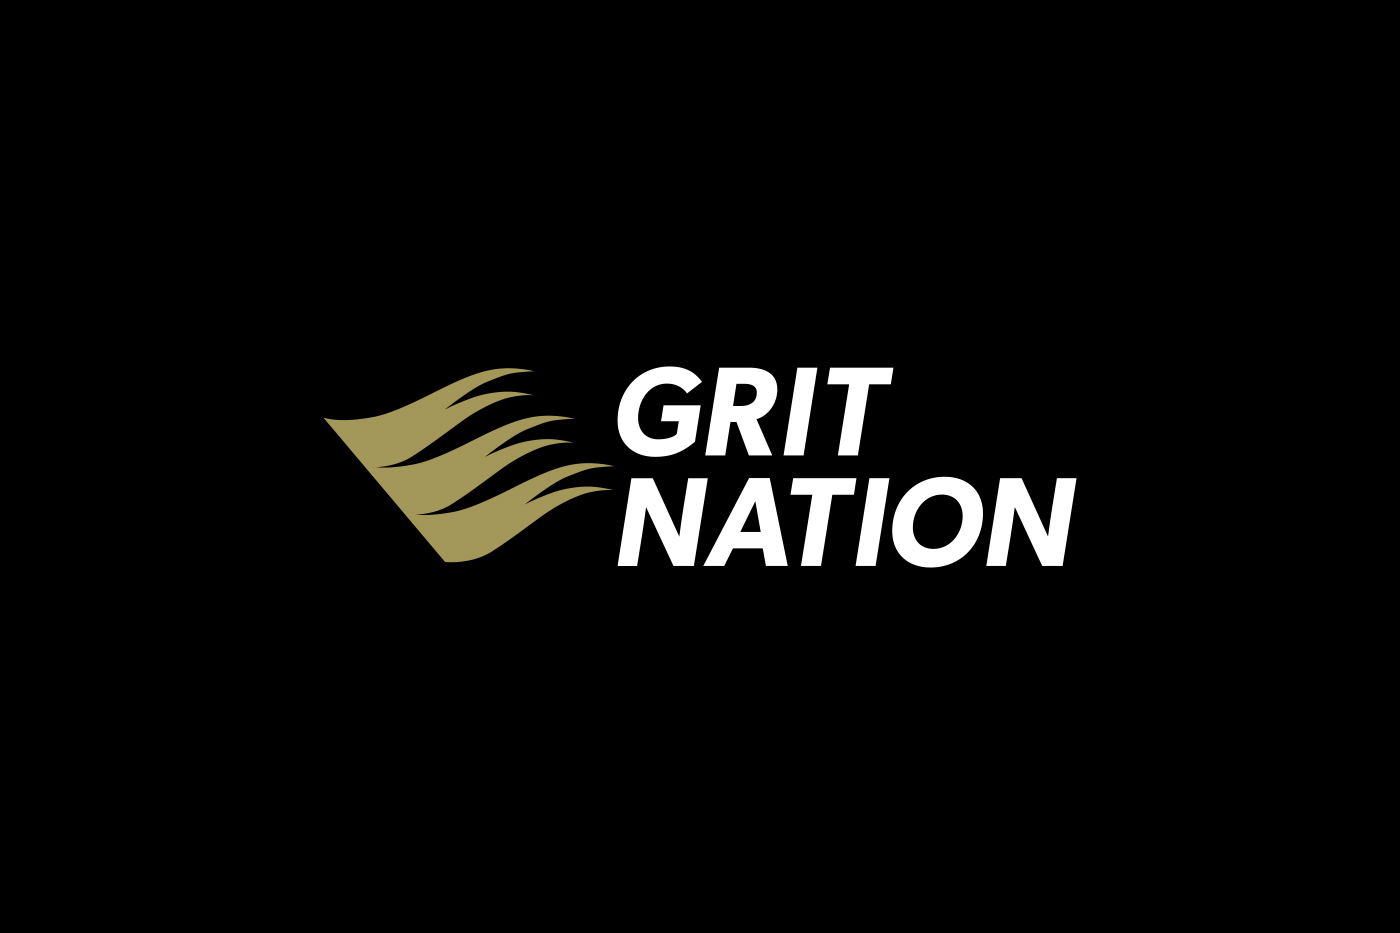 ON×GRIT NATION